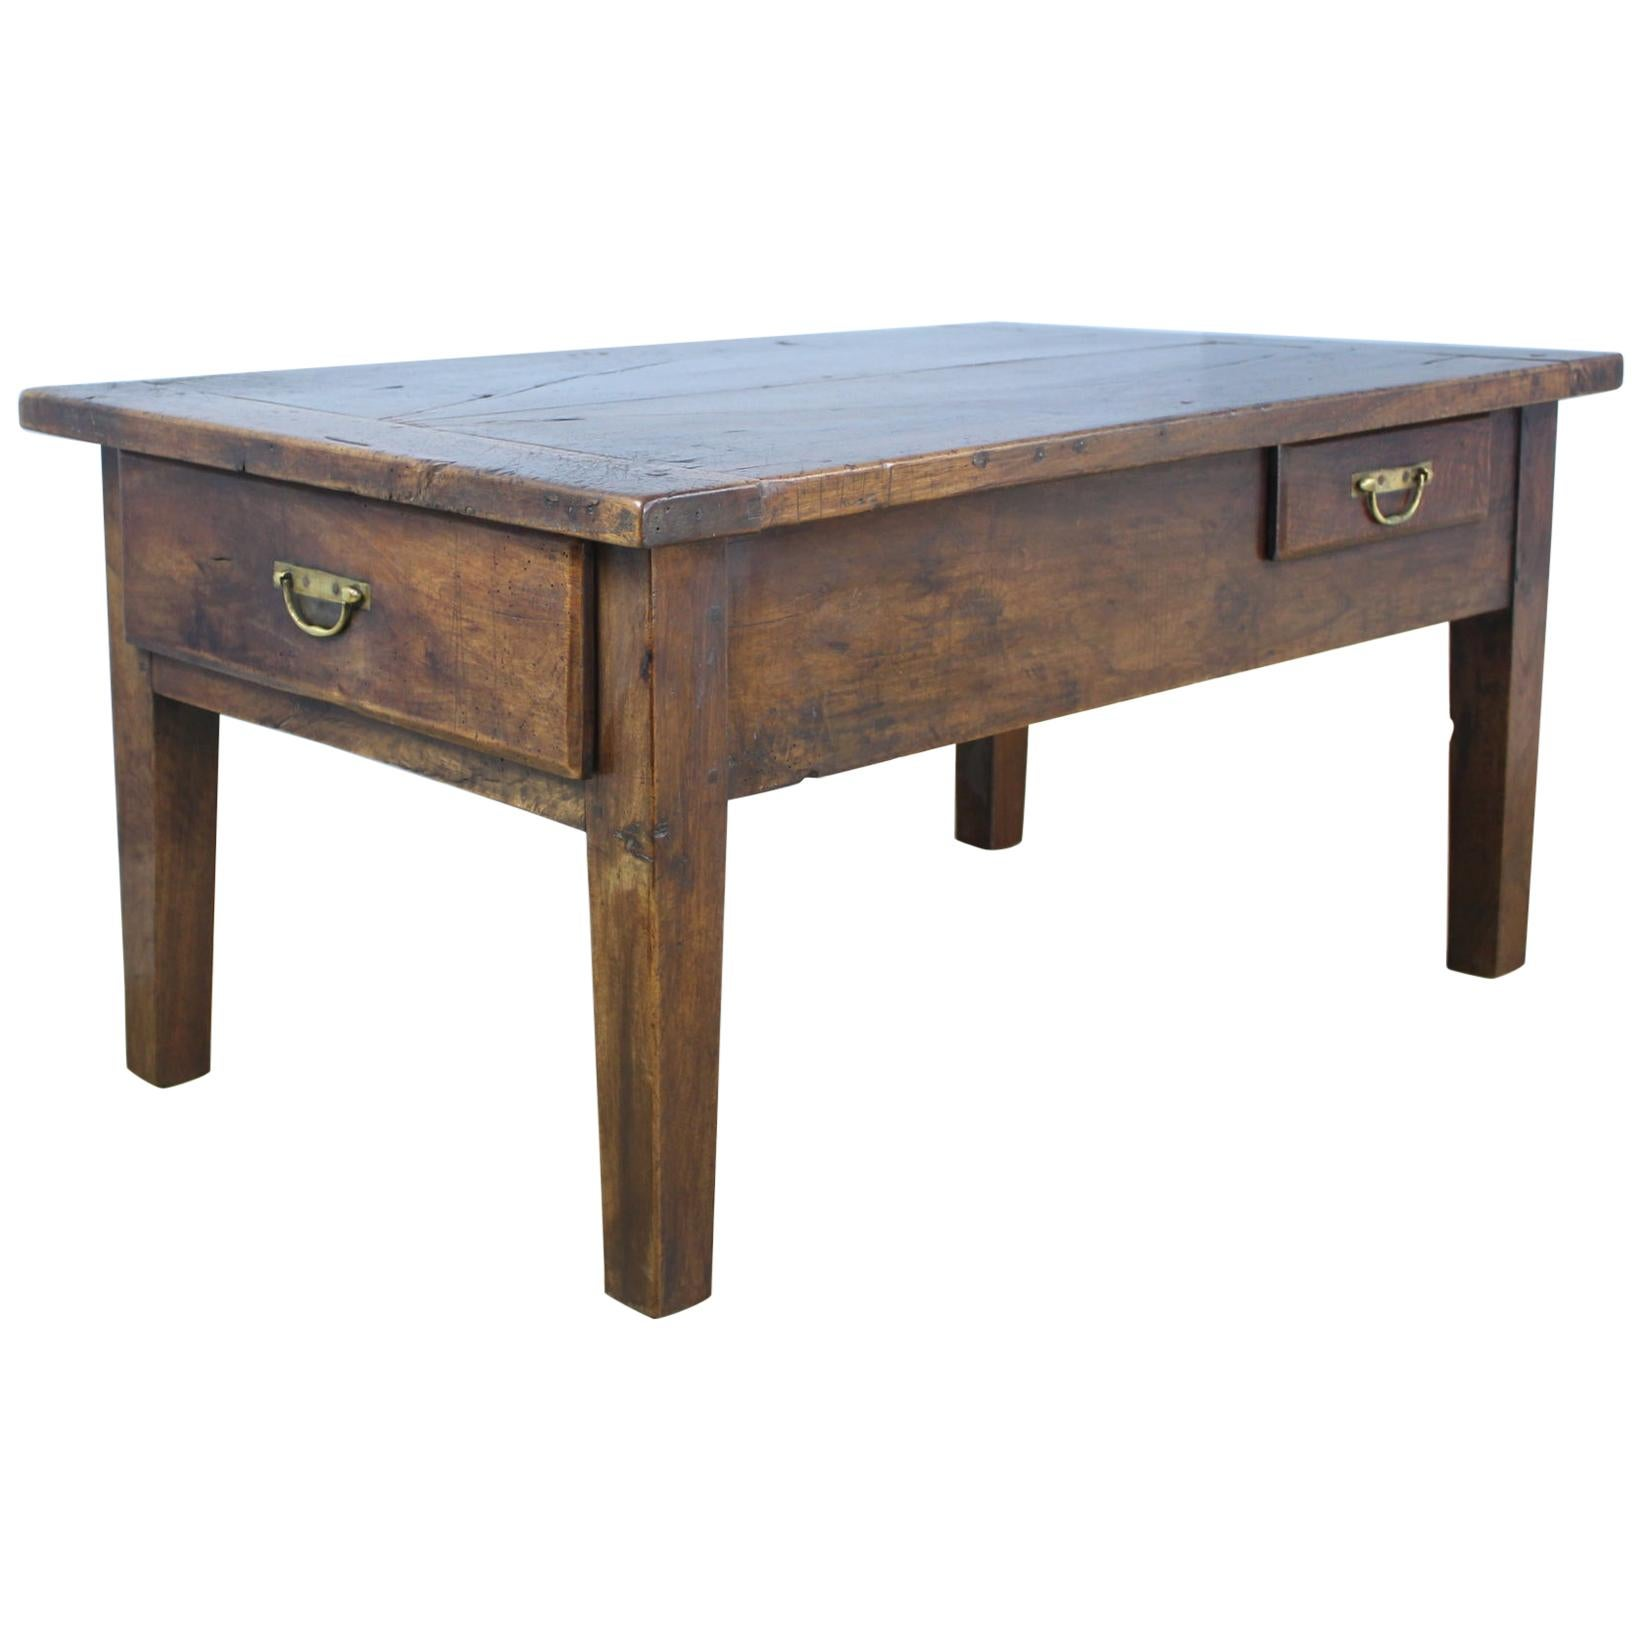 Chunky Two-Drawer Walnut Coffee Table with Cleated Top